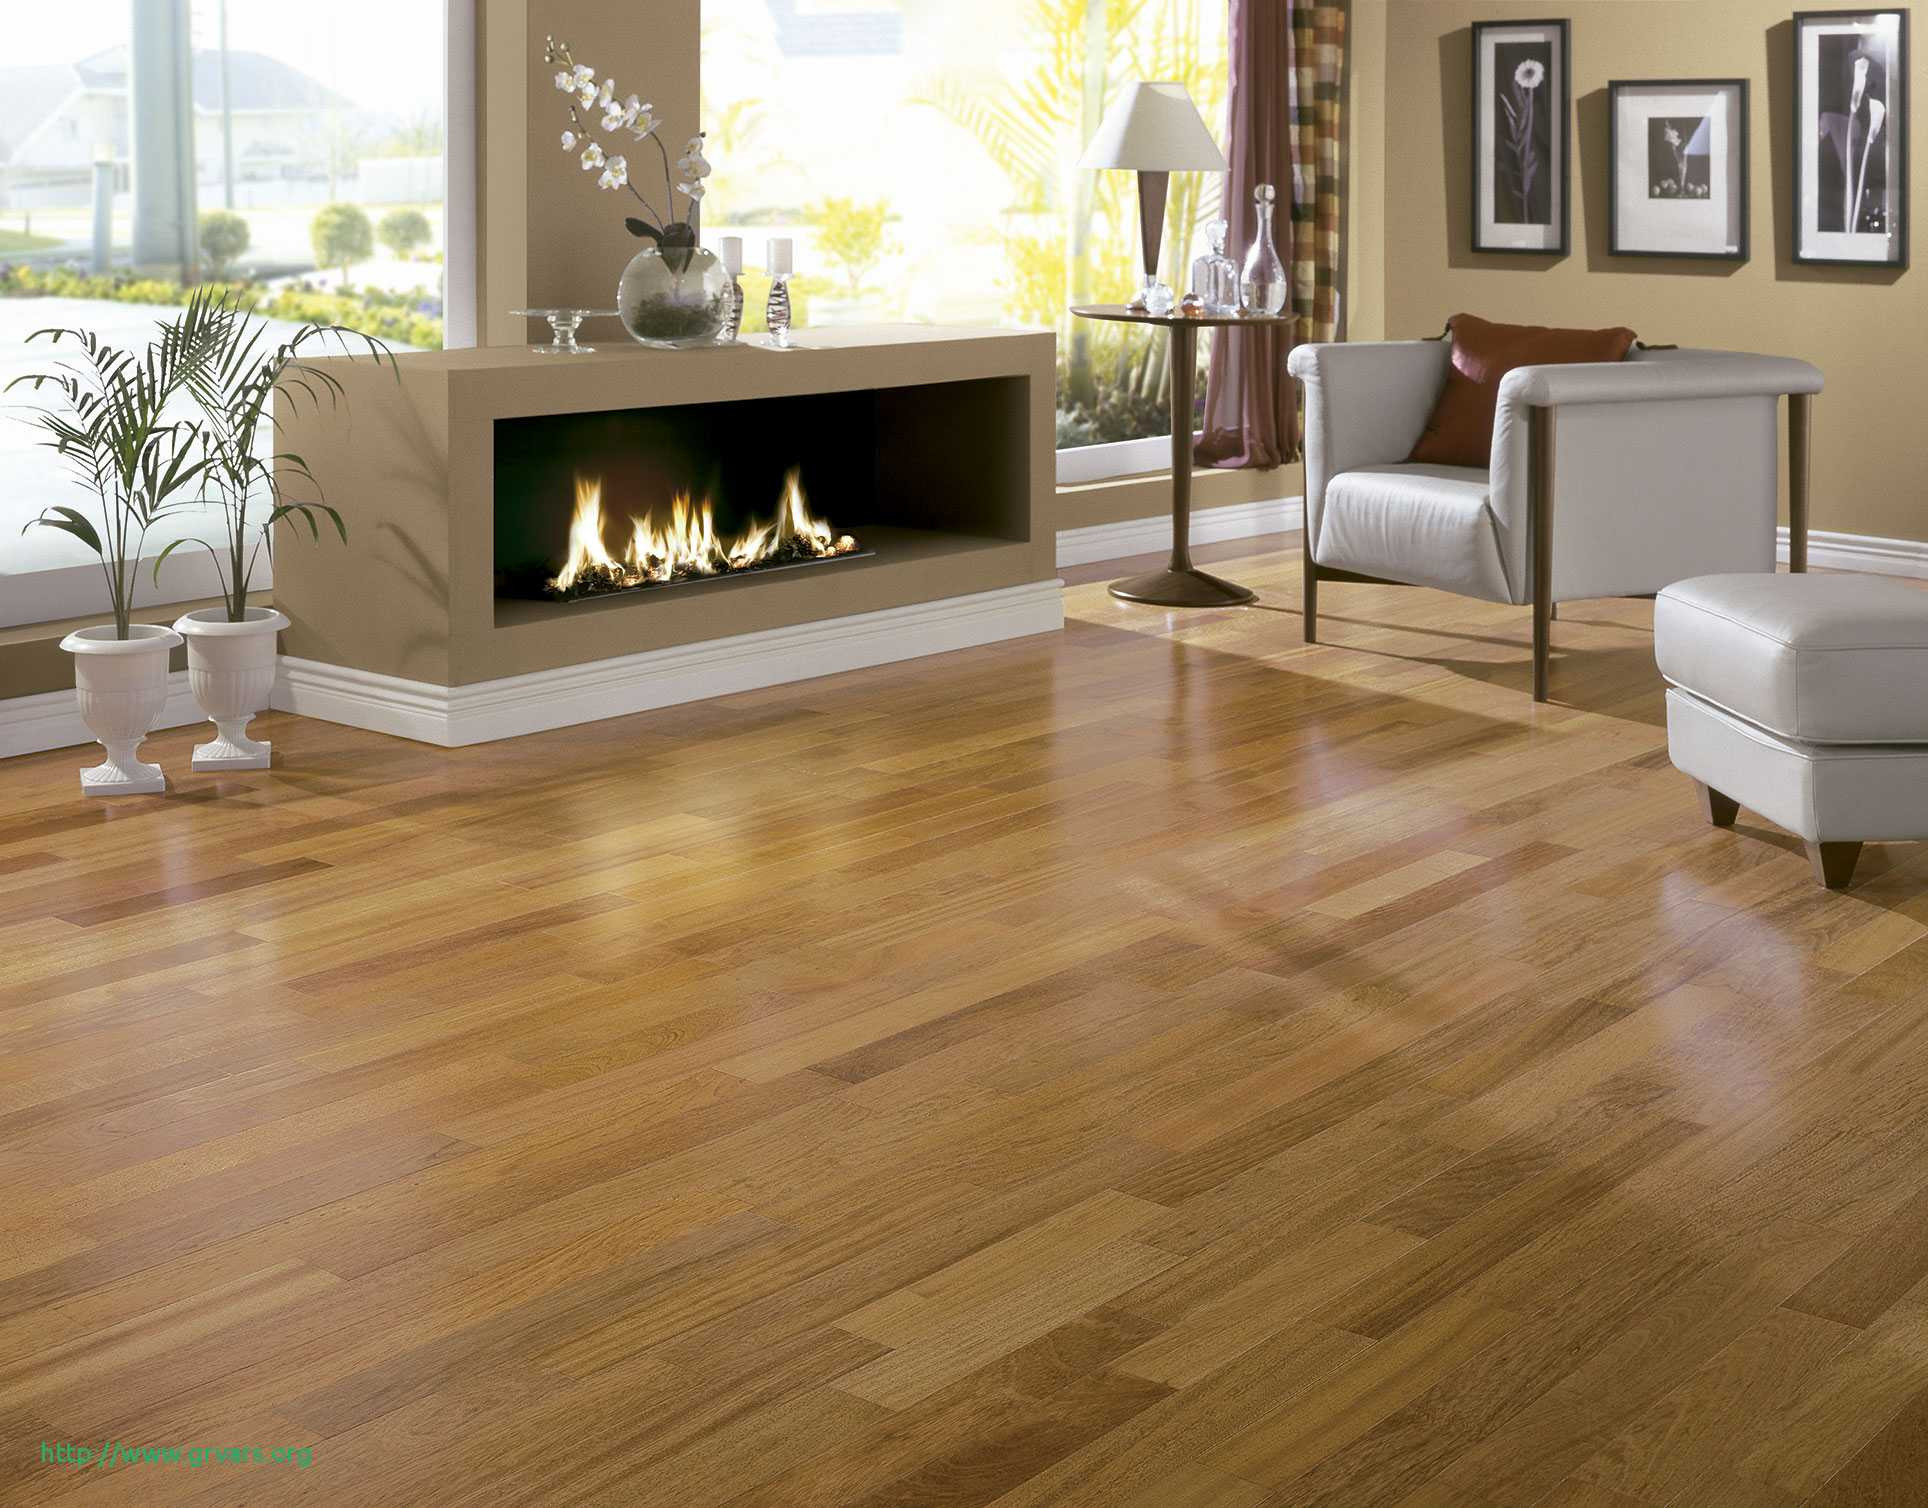 laminate and hardwood flooring difference of difference in hardwood floors charmant engaging discount hardwood regarding difference in hardwood floors charmant engaging discount hardwood flooring 5 where to buy inspirational 0d